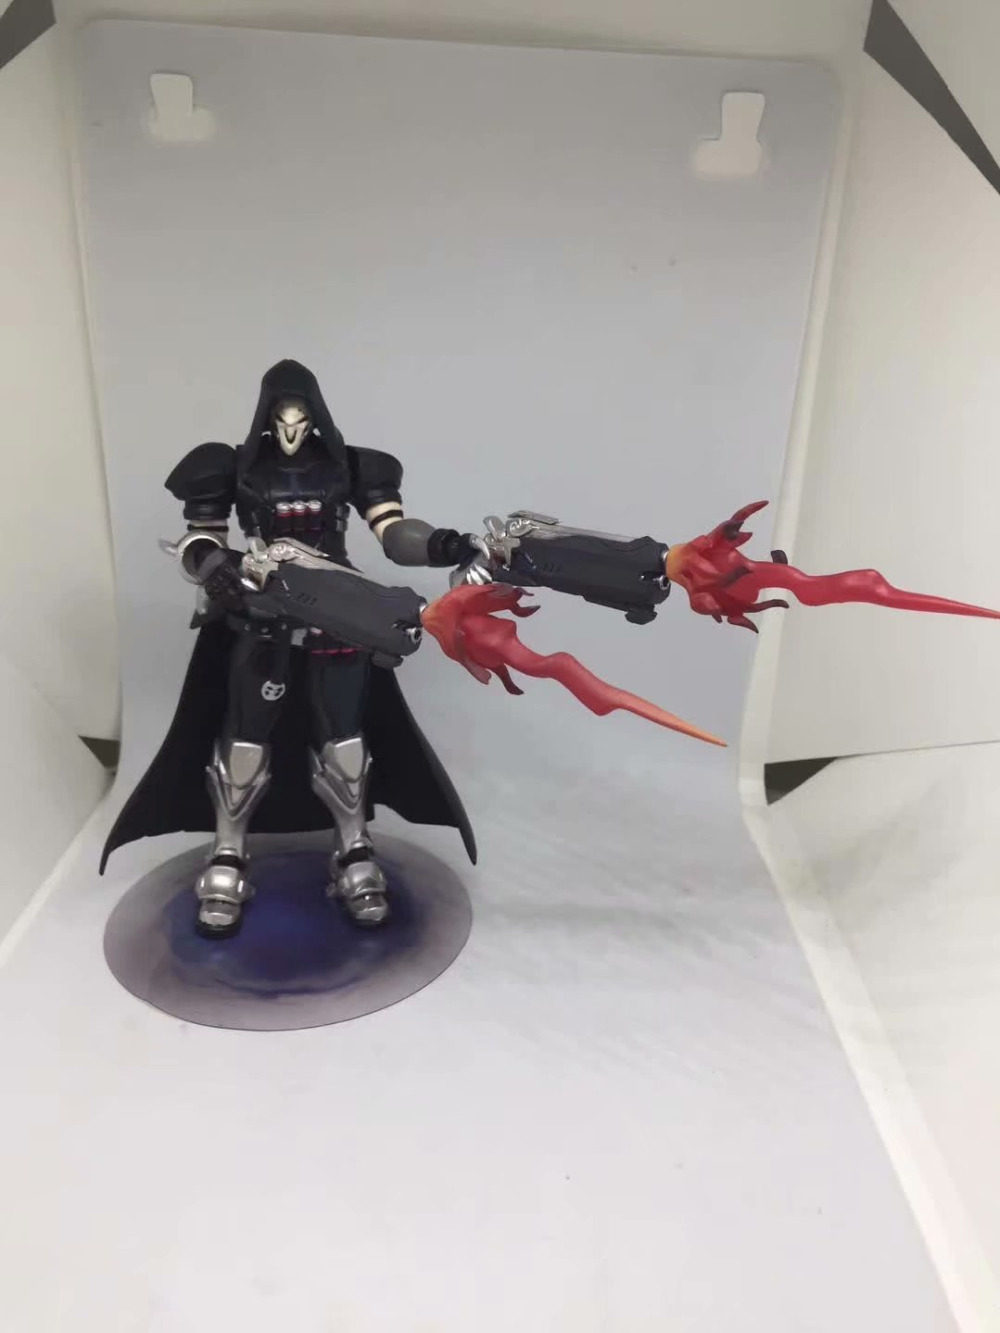 17cm ow Figma 393 Overwatches Reaper Series PVC Action Figure Model Toys Doll Gift 3